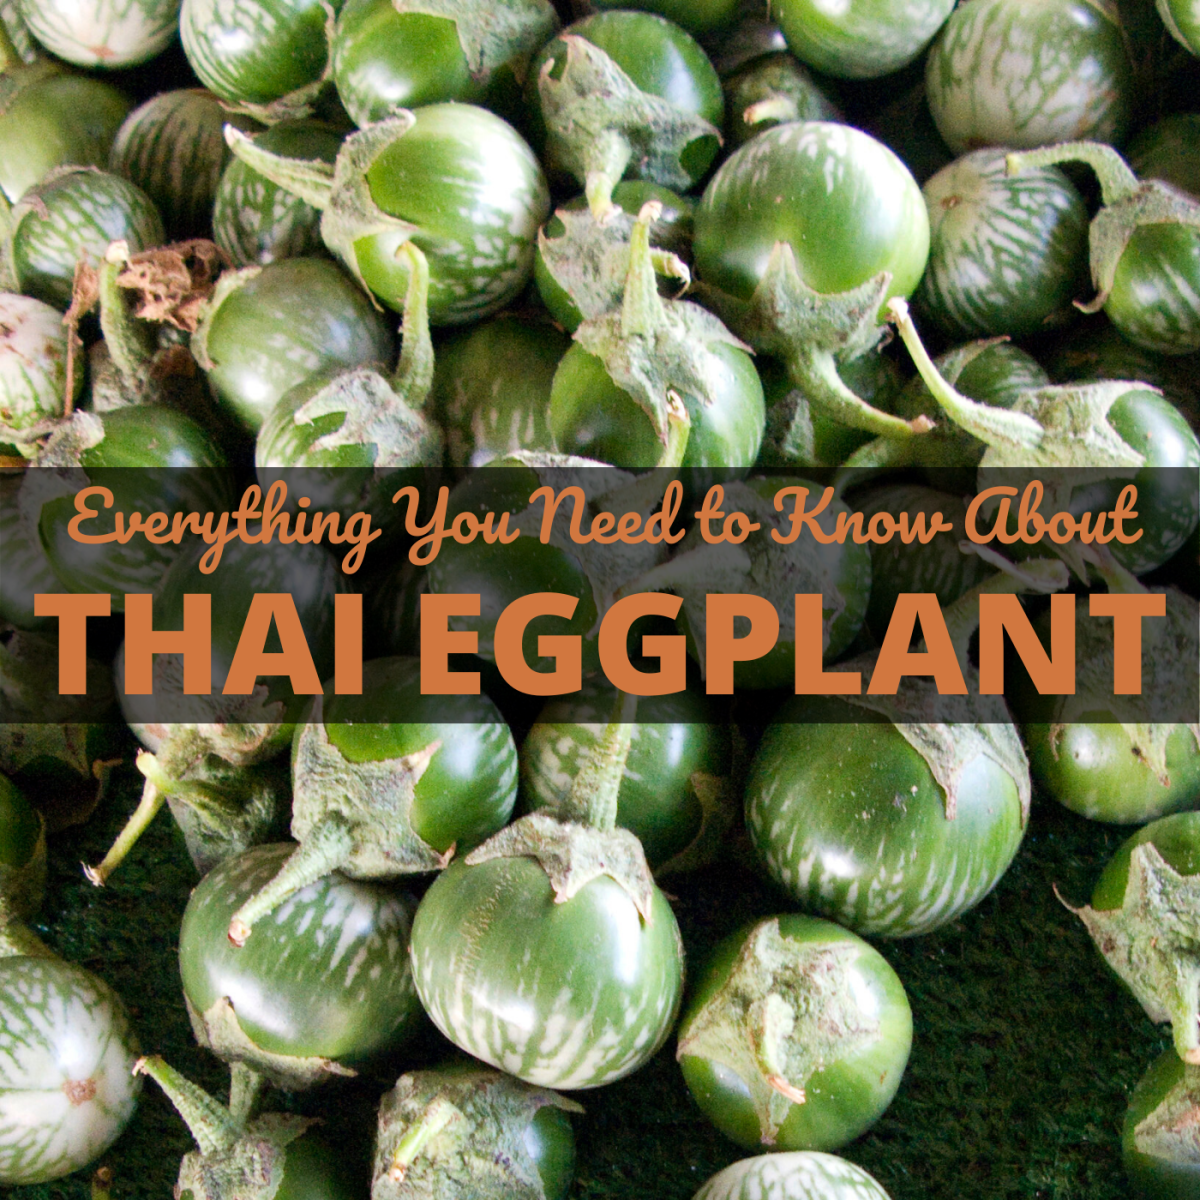 Thai Eggplant: A Popular Thai Food Ingredient